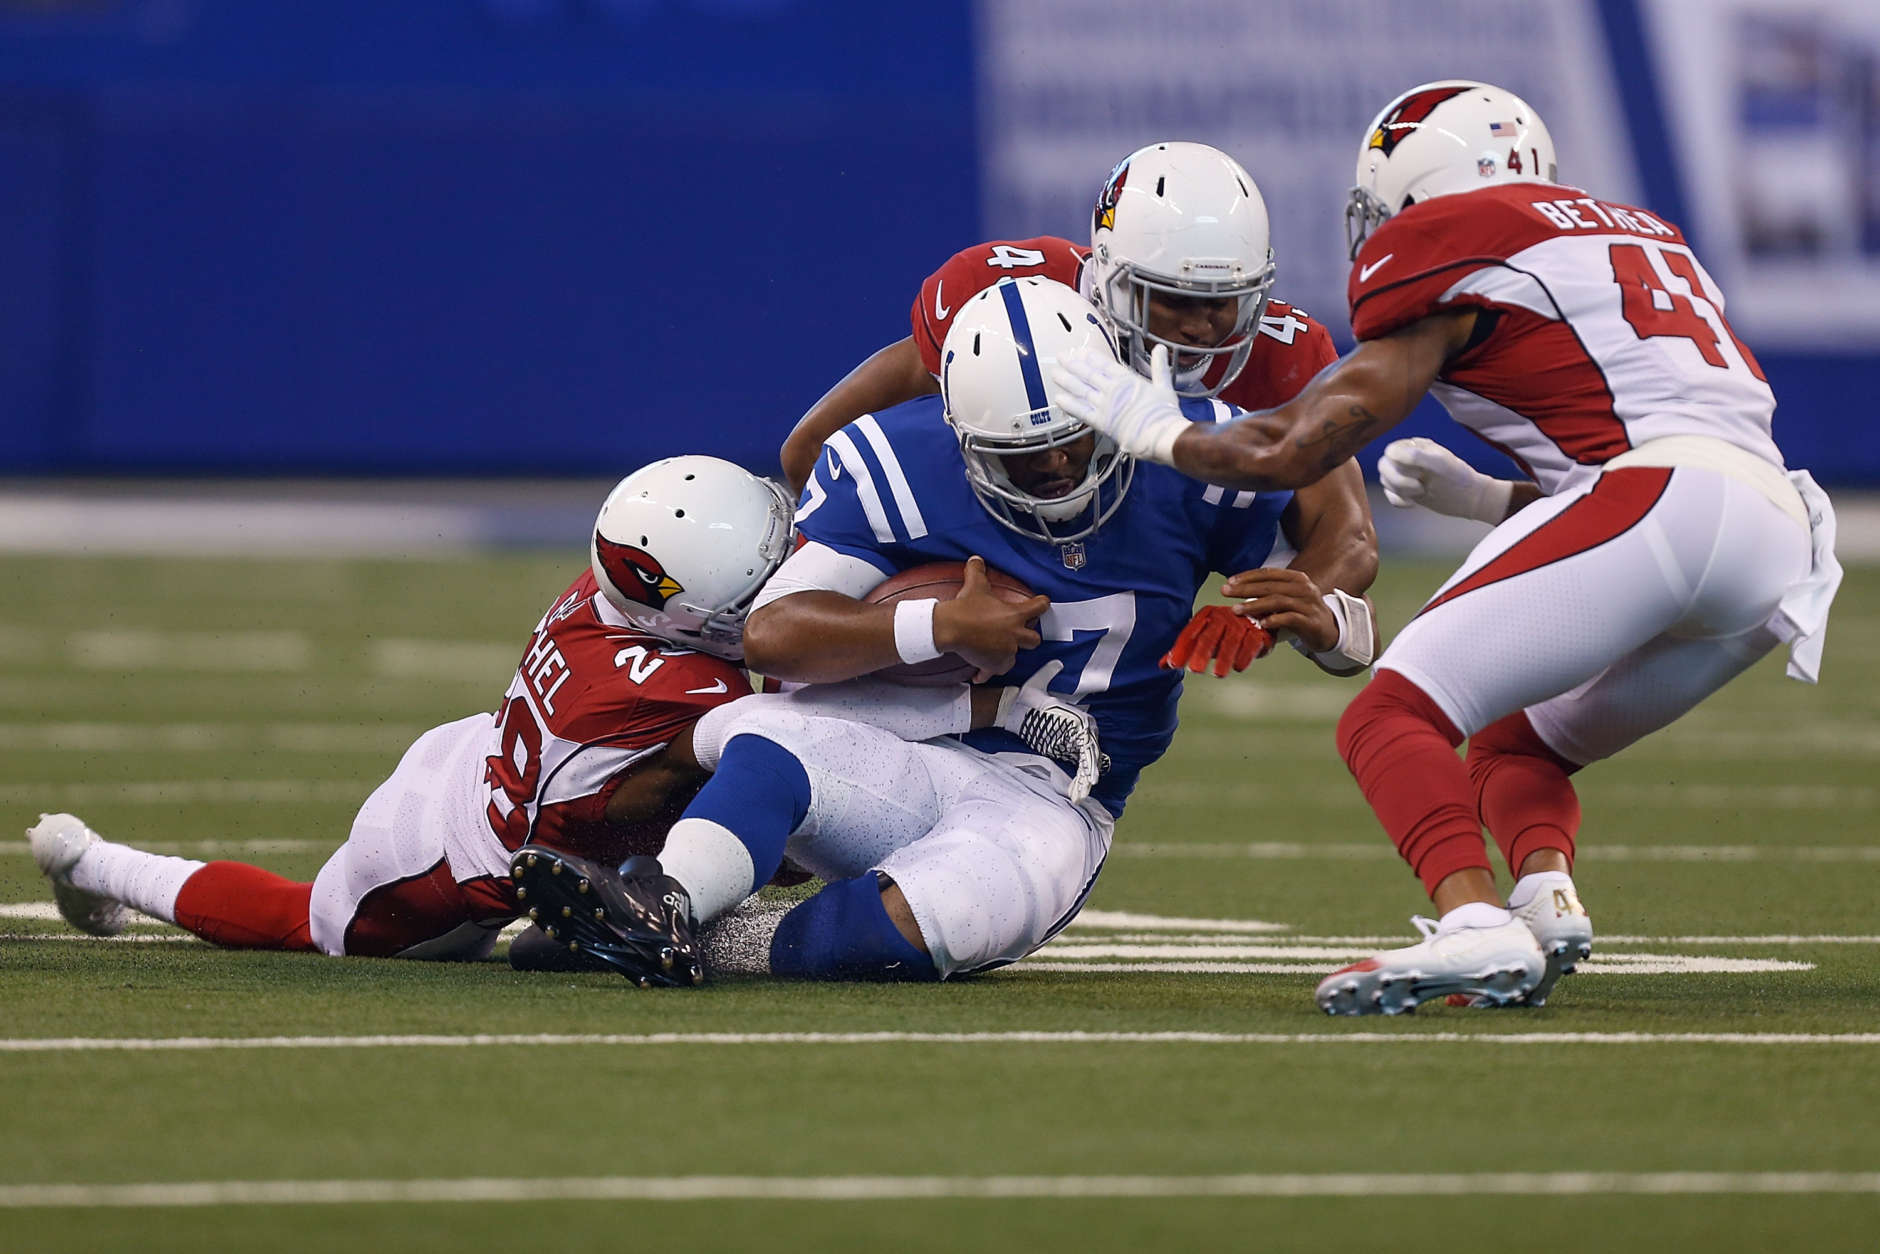 INDIANAPOLIS, IN - SEPTEMBER 17:  Jacoby Brissett #7 of the Indianapolis Colts is tackled by Justin Bethel #28, Haason Reddick #43 and Antoine Bethea #41 of the Arizona Cardinals during the first half at Lucas Oil Stadium on September 17, 2017 in Indianapolis, Indiana.  (Photo by Michael Reaves/Getty Images)